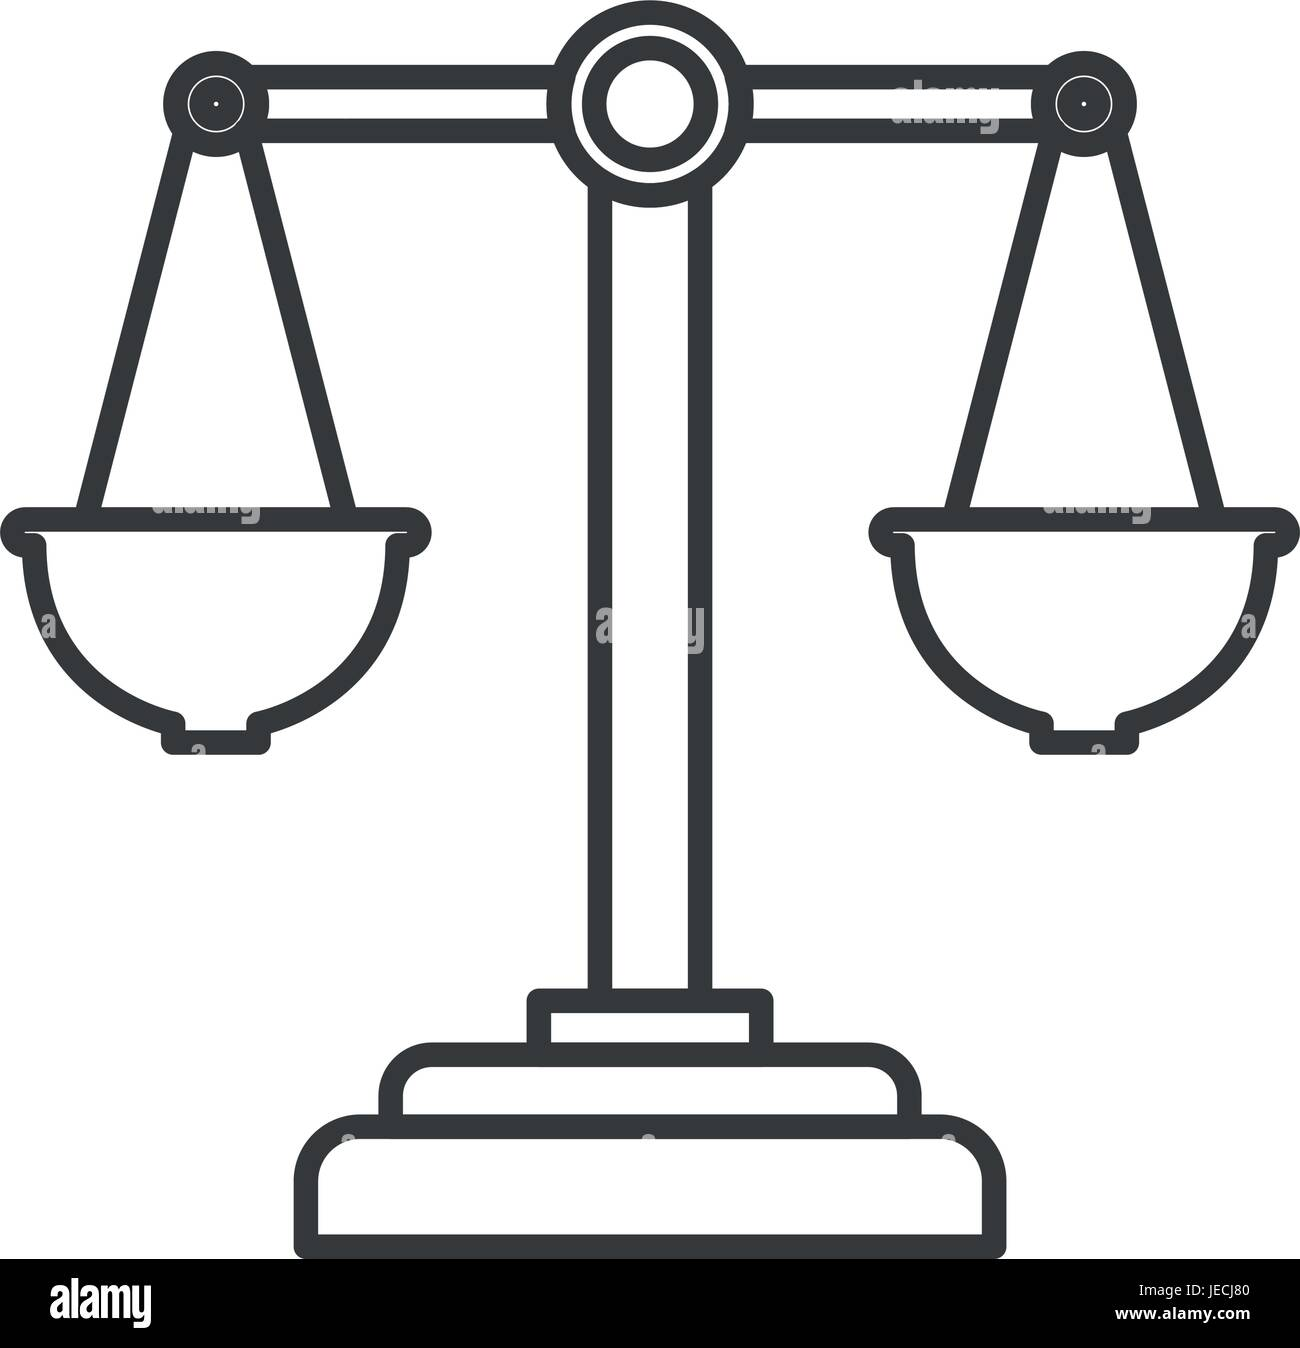 monochrome silhouette of justice scales - Stock Vector